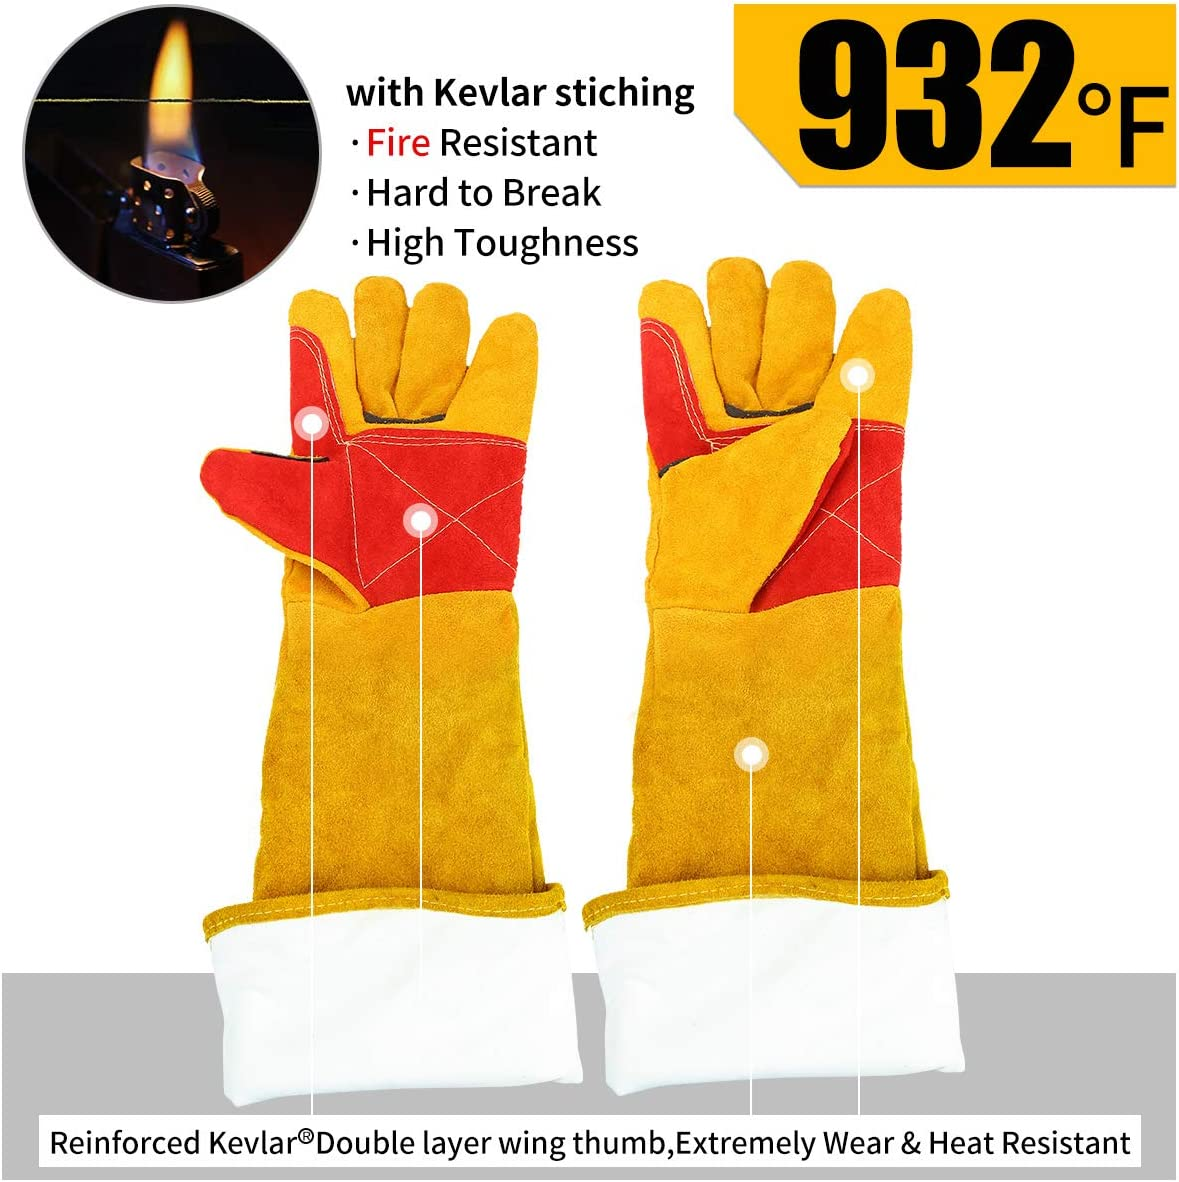 Leather Welding Gloves Large Yellow Shoulder Split Cowhide 23 inchs Length Forearm Protection Heat//Fire Resistant,Mitts for BBQ,Oven,Fireplace,Tig,Mig,Baking Animal Handling Glove.932℉